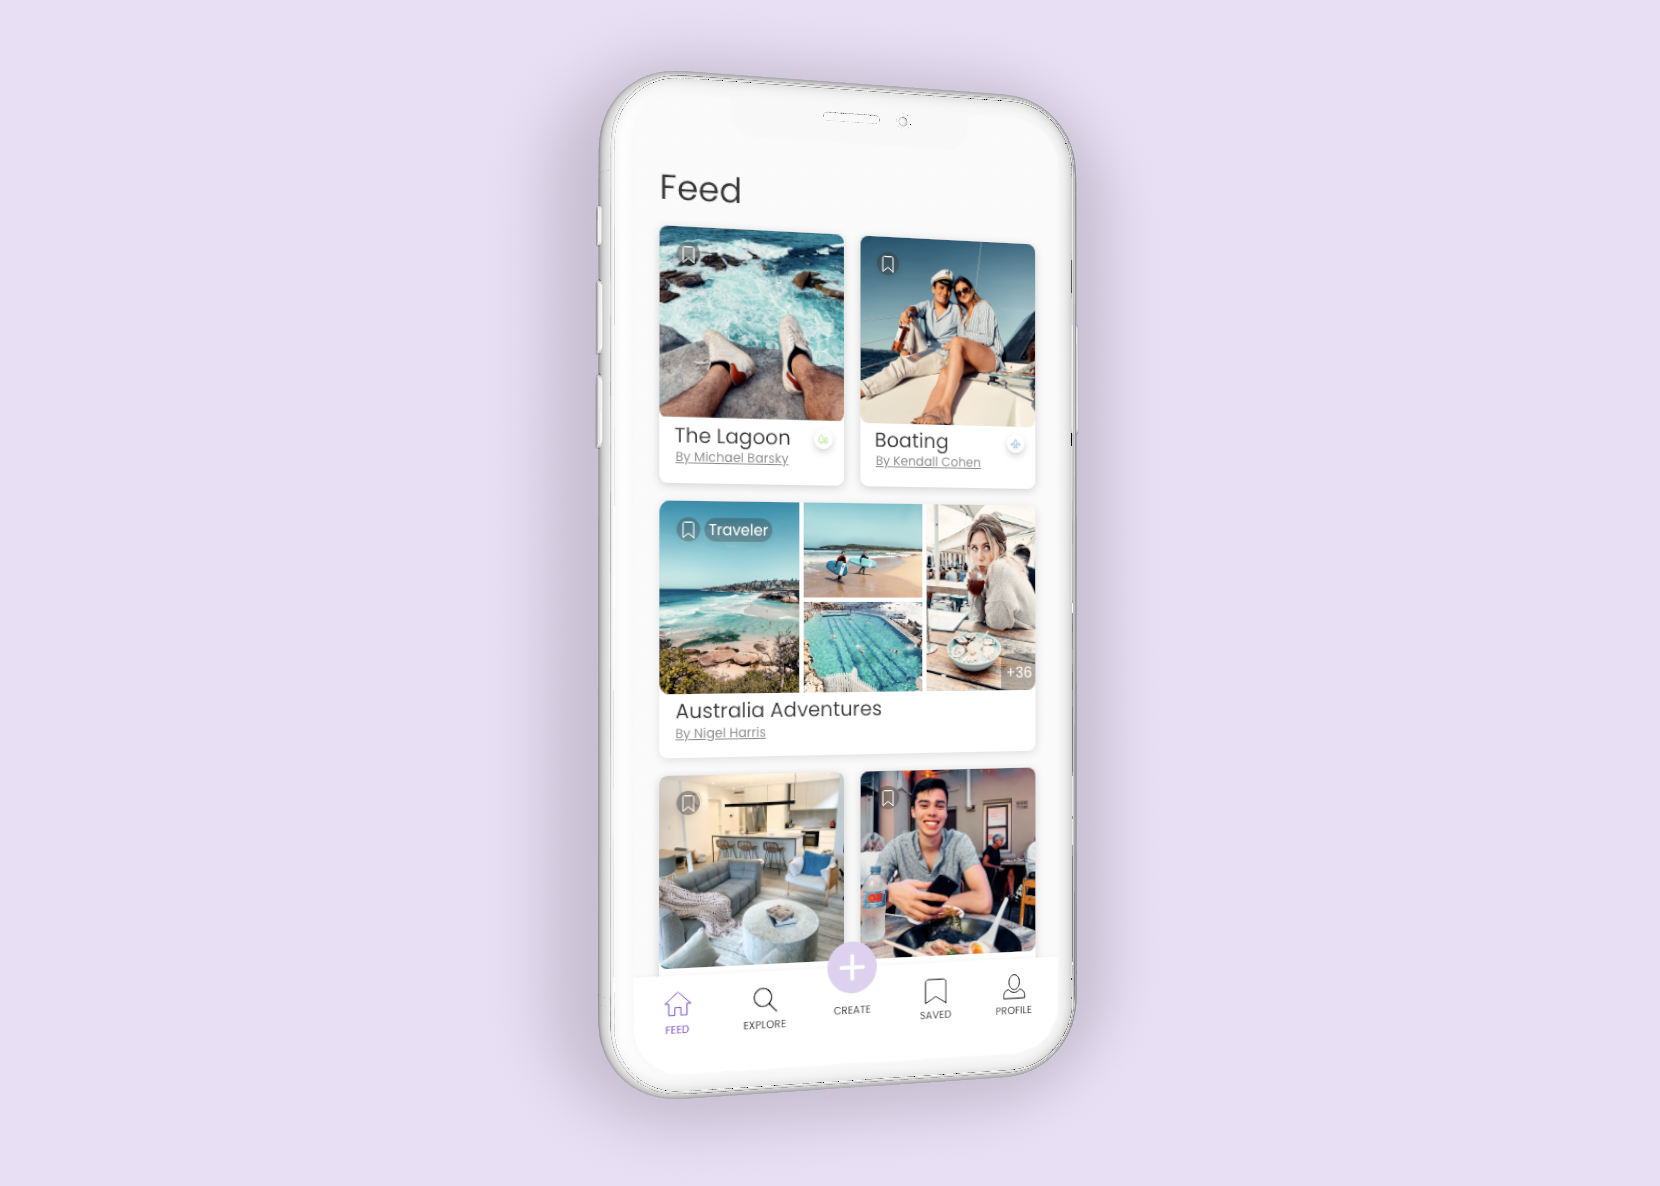 A platform to share, explore, and plan travel experiences